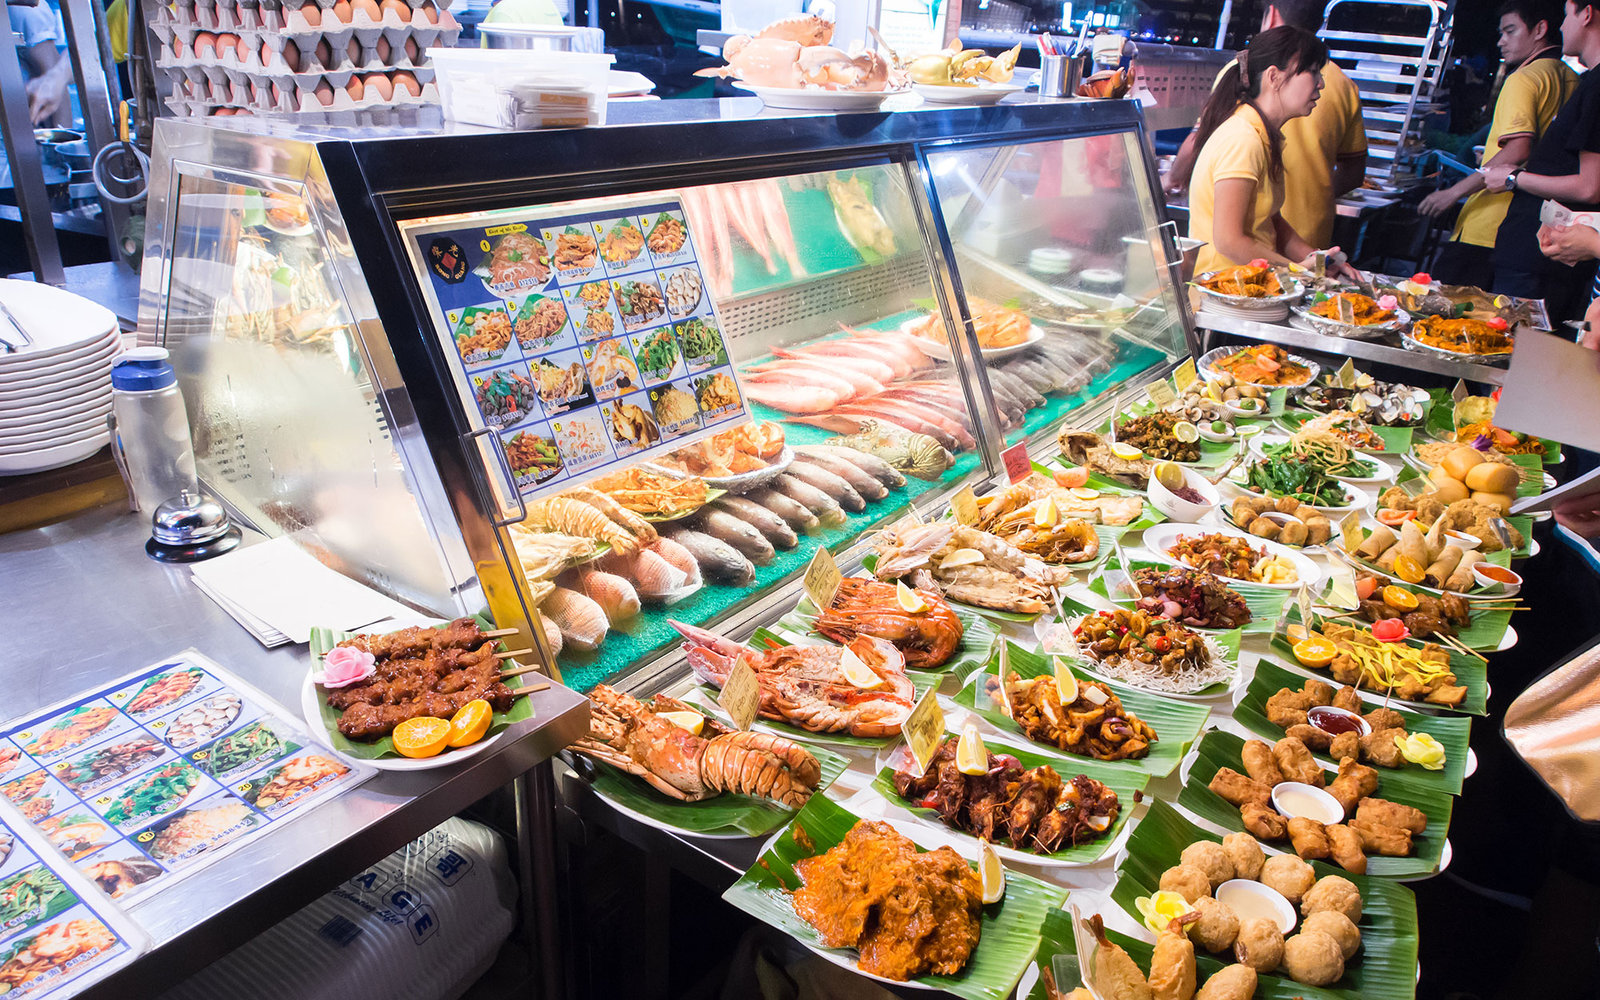 SINGAPORE - MARCH 08: Street foods in Singapore. Inexpensive food stalls are numerous in the city so most Singaporeans dine out at least once a day.. Singapore, March 08,2014; Shutterstock ID 184492361